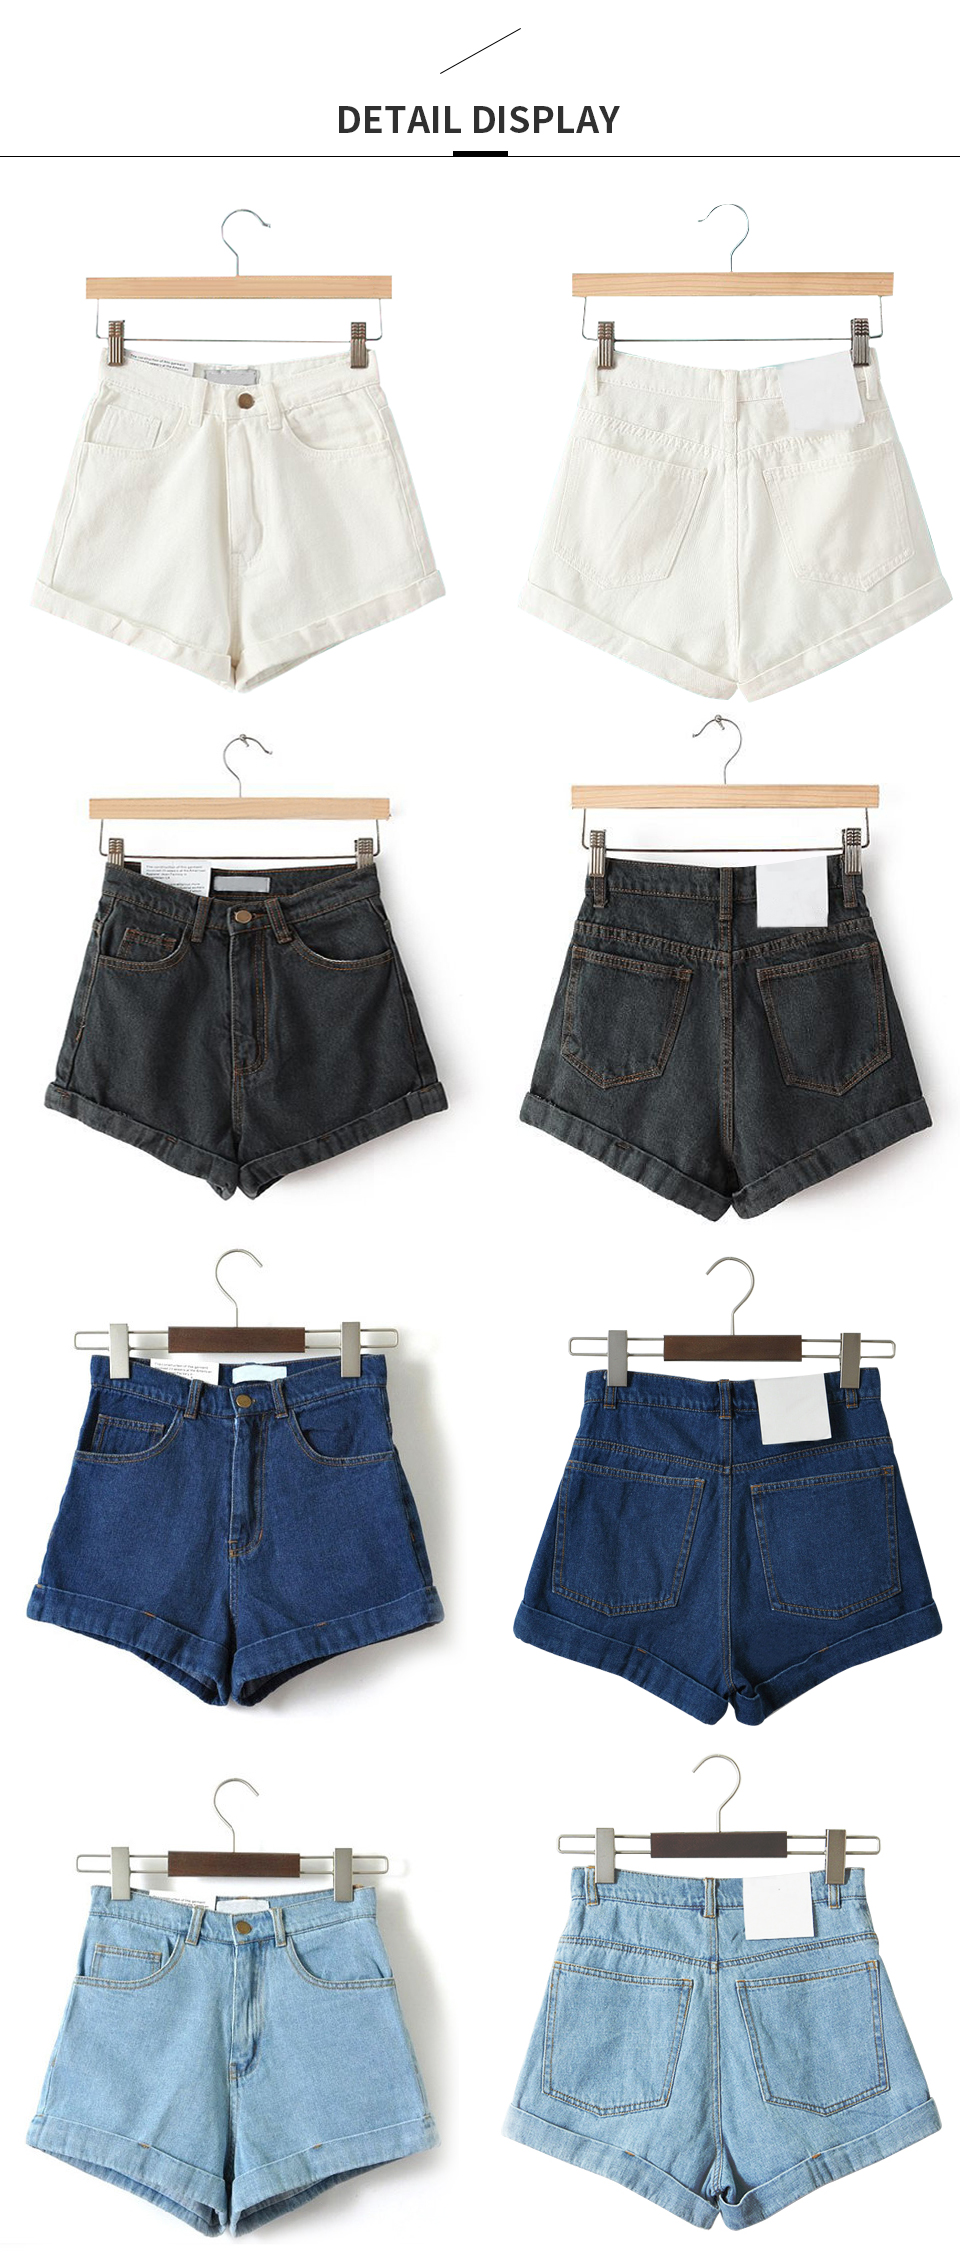 HTB1n3wxiYZnBKNjSZFrq6yRLFXal - GOPLUS High Waist Denim Shorts for Women Vintage Sexy Brand Shorts Jeans Women Denim Shorts Feminino Slim Hip Plus Size C3627